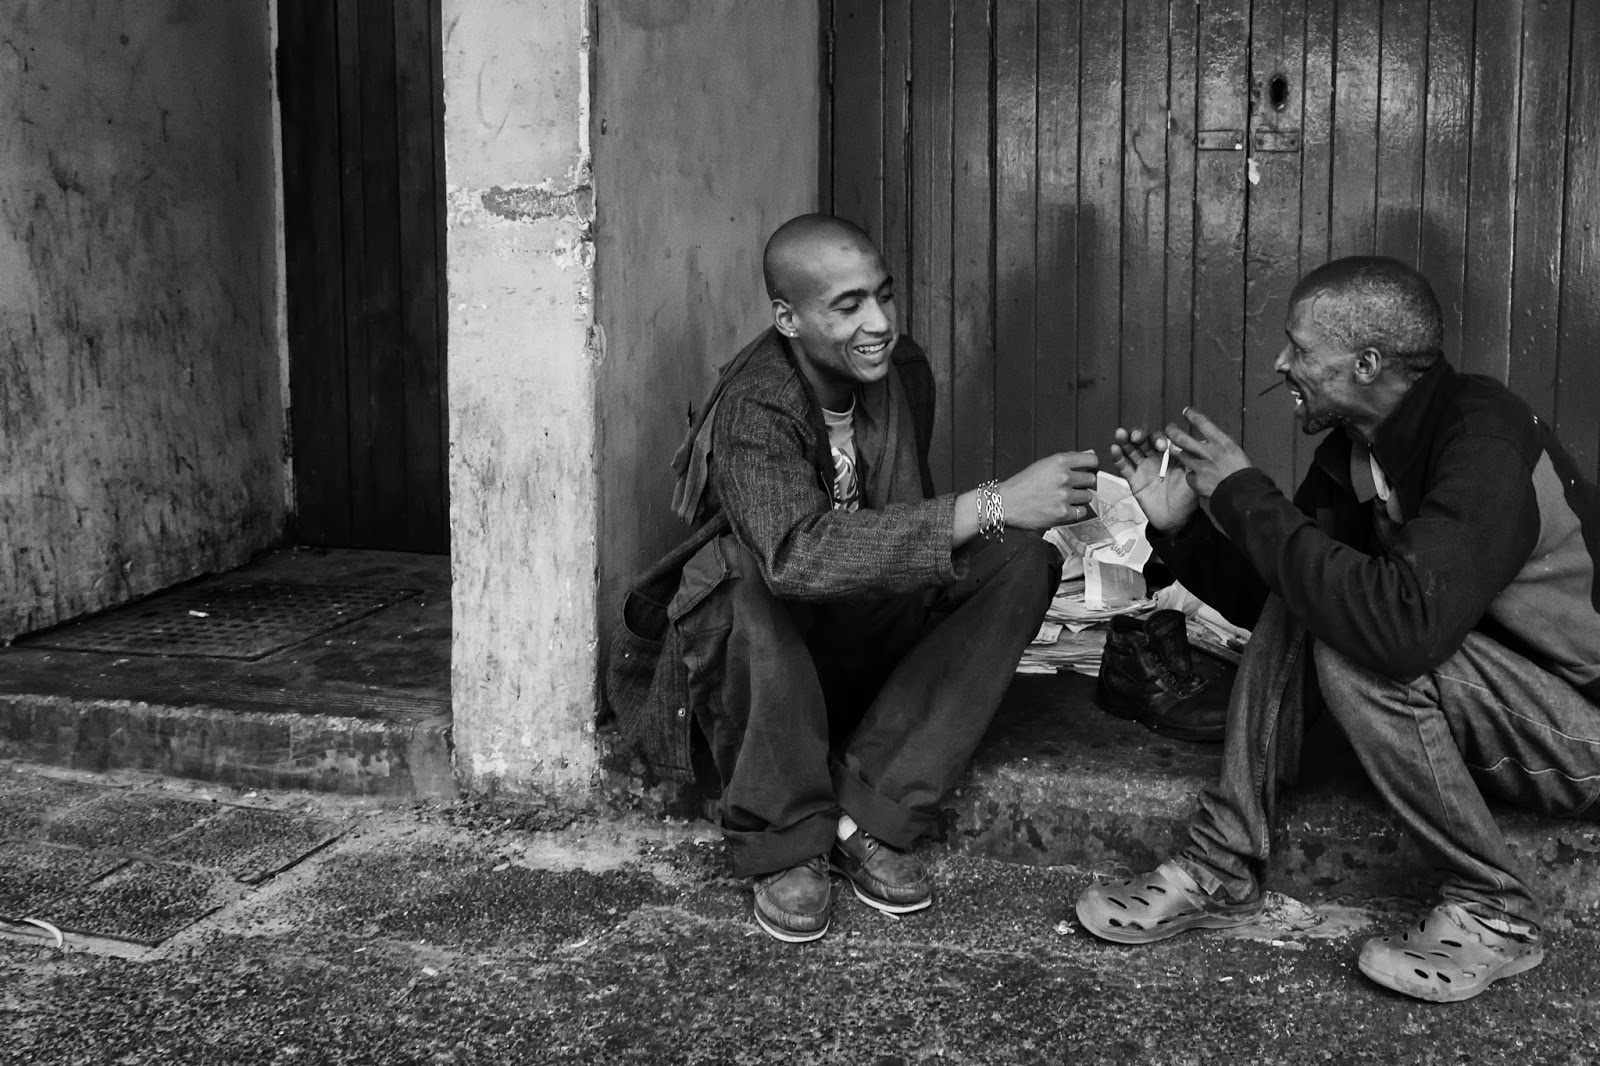 Two men sit on a doorstep in this Cape Town street photograph